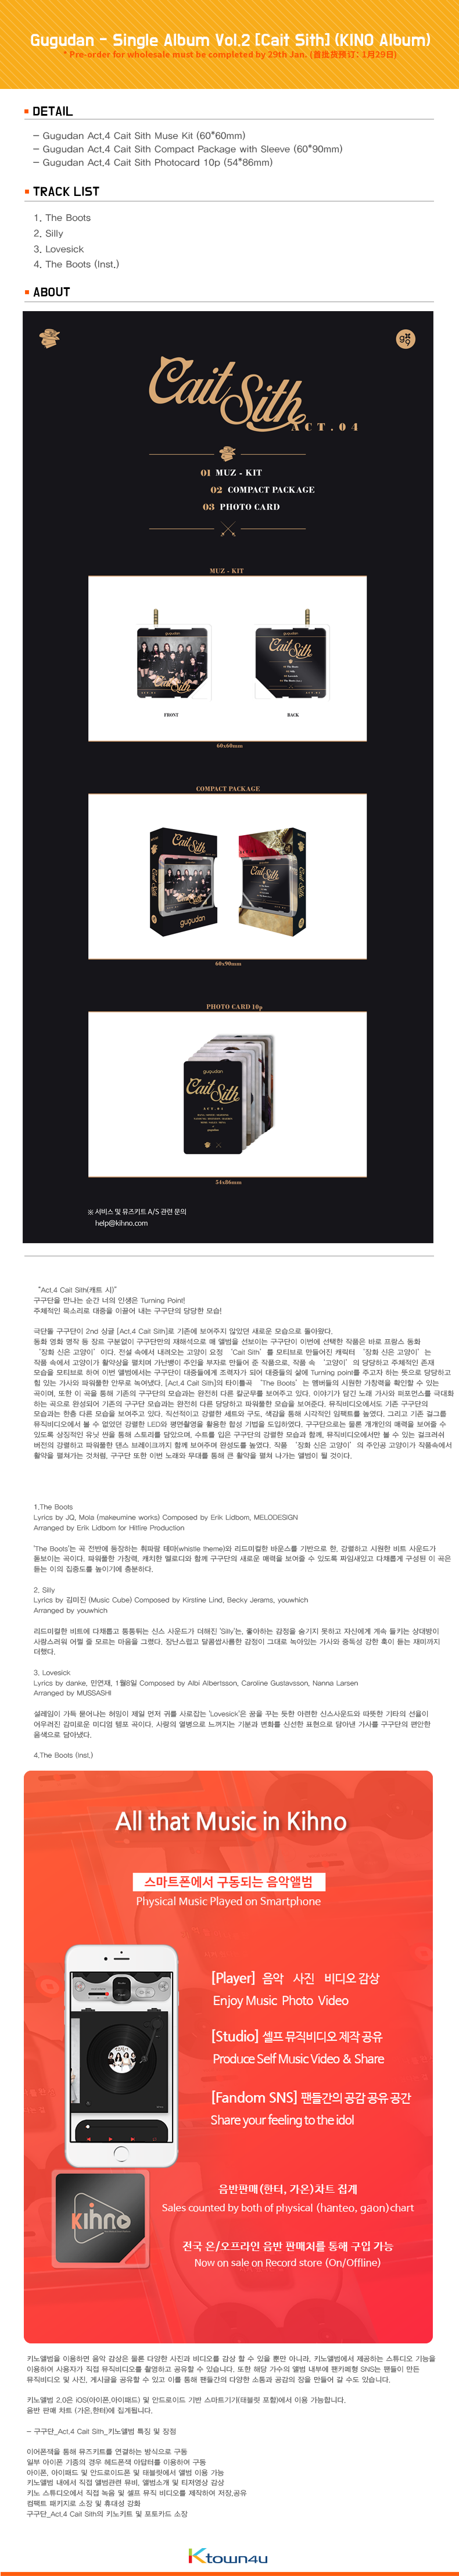 Gugudan - Single Album Vol.2 [Cait Sith] (KIHNO Album) *Due to the built-in battery of the Khino album, only 1 item could be ordered and shipped at a time.